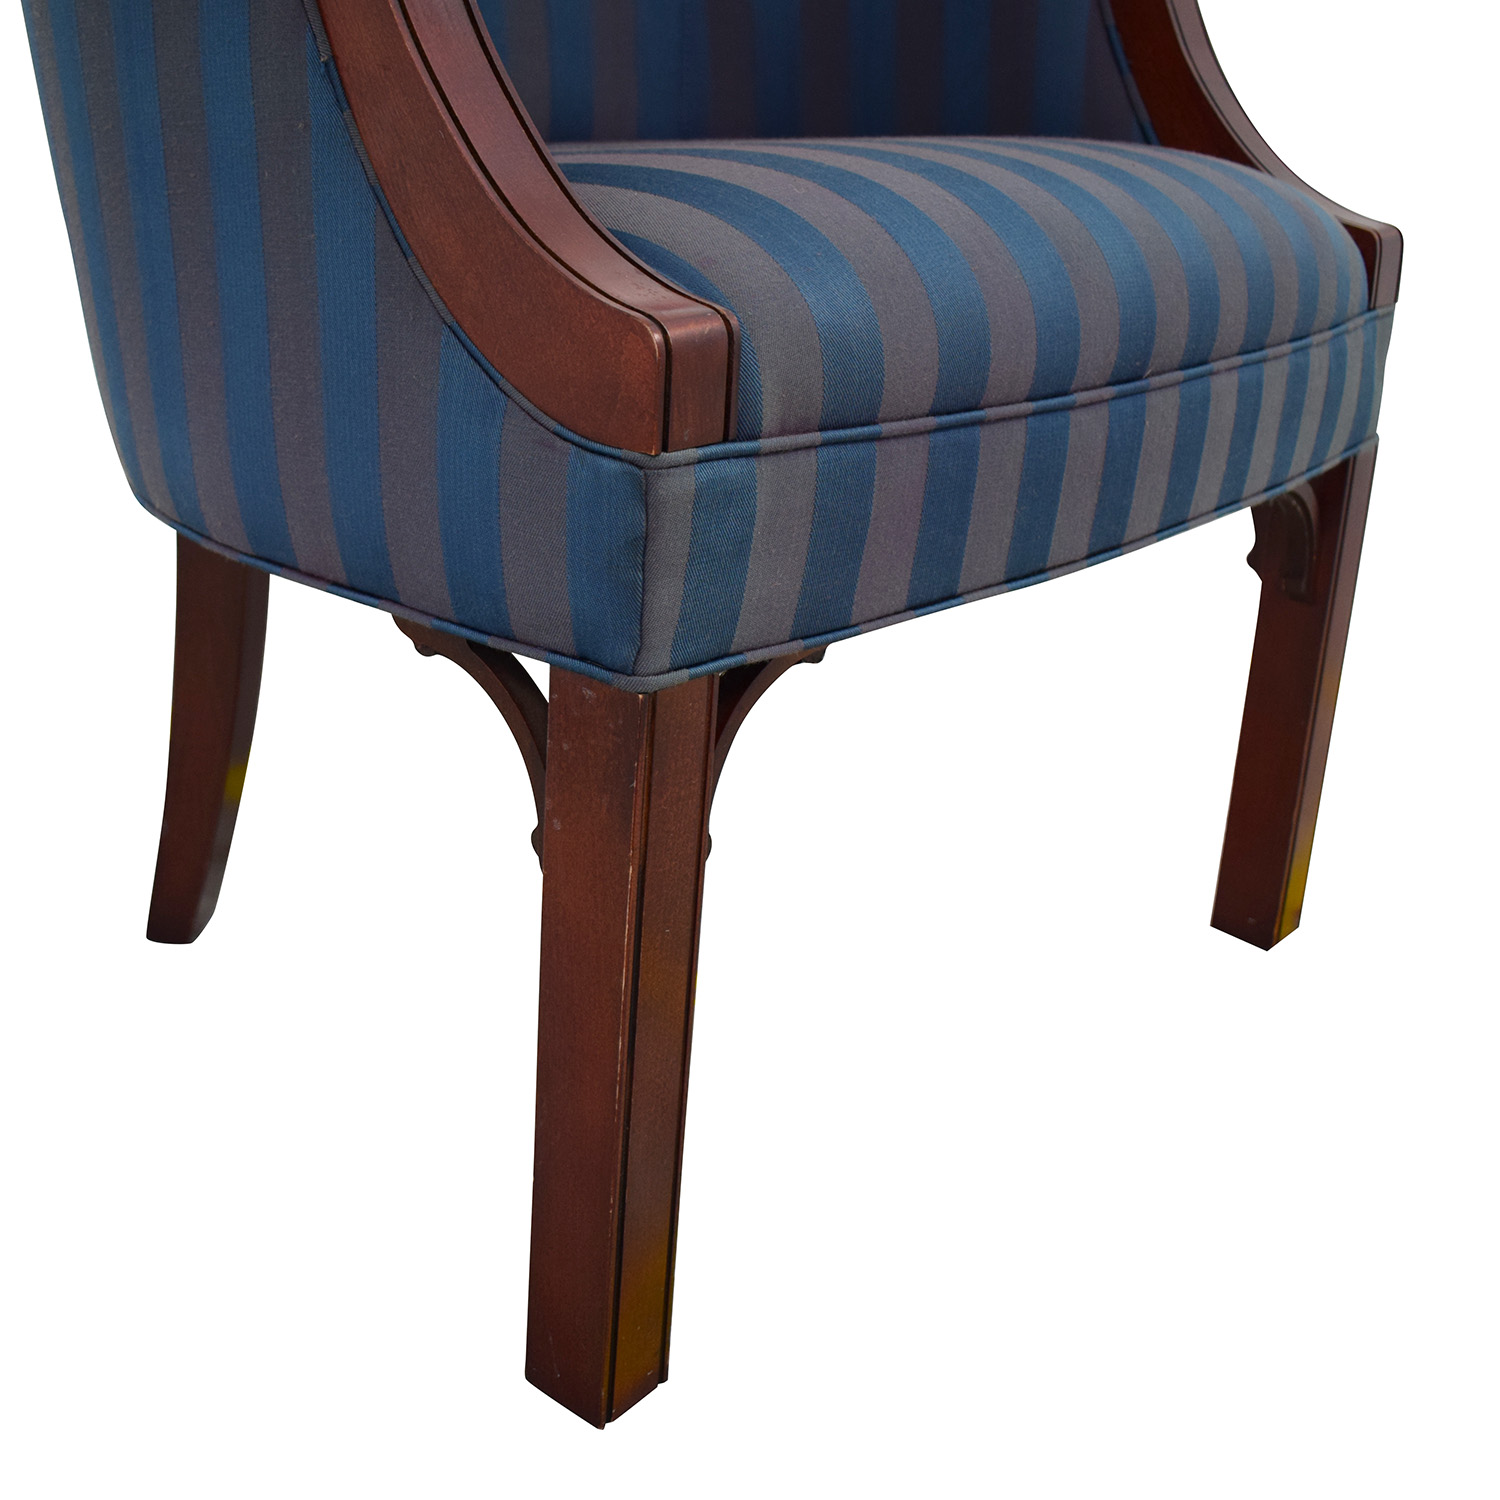 Kimball Kimball Independence Newcastle Chair price